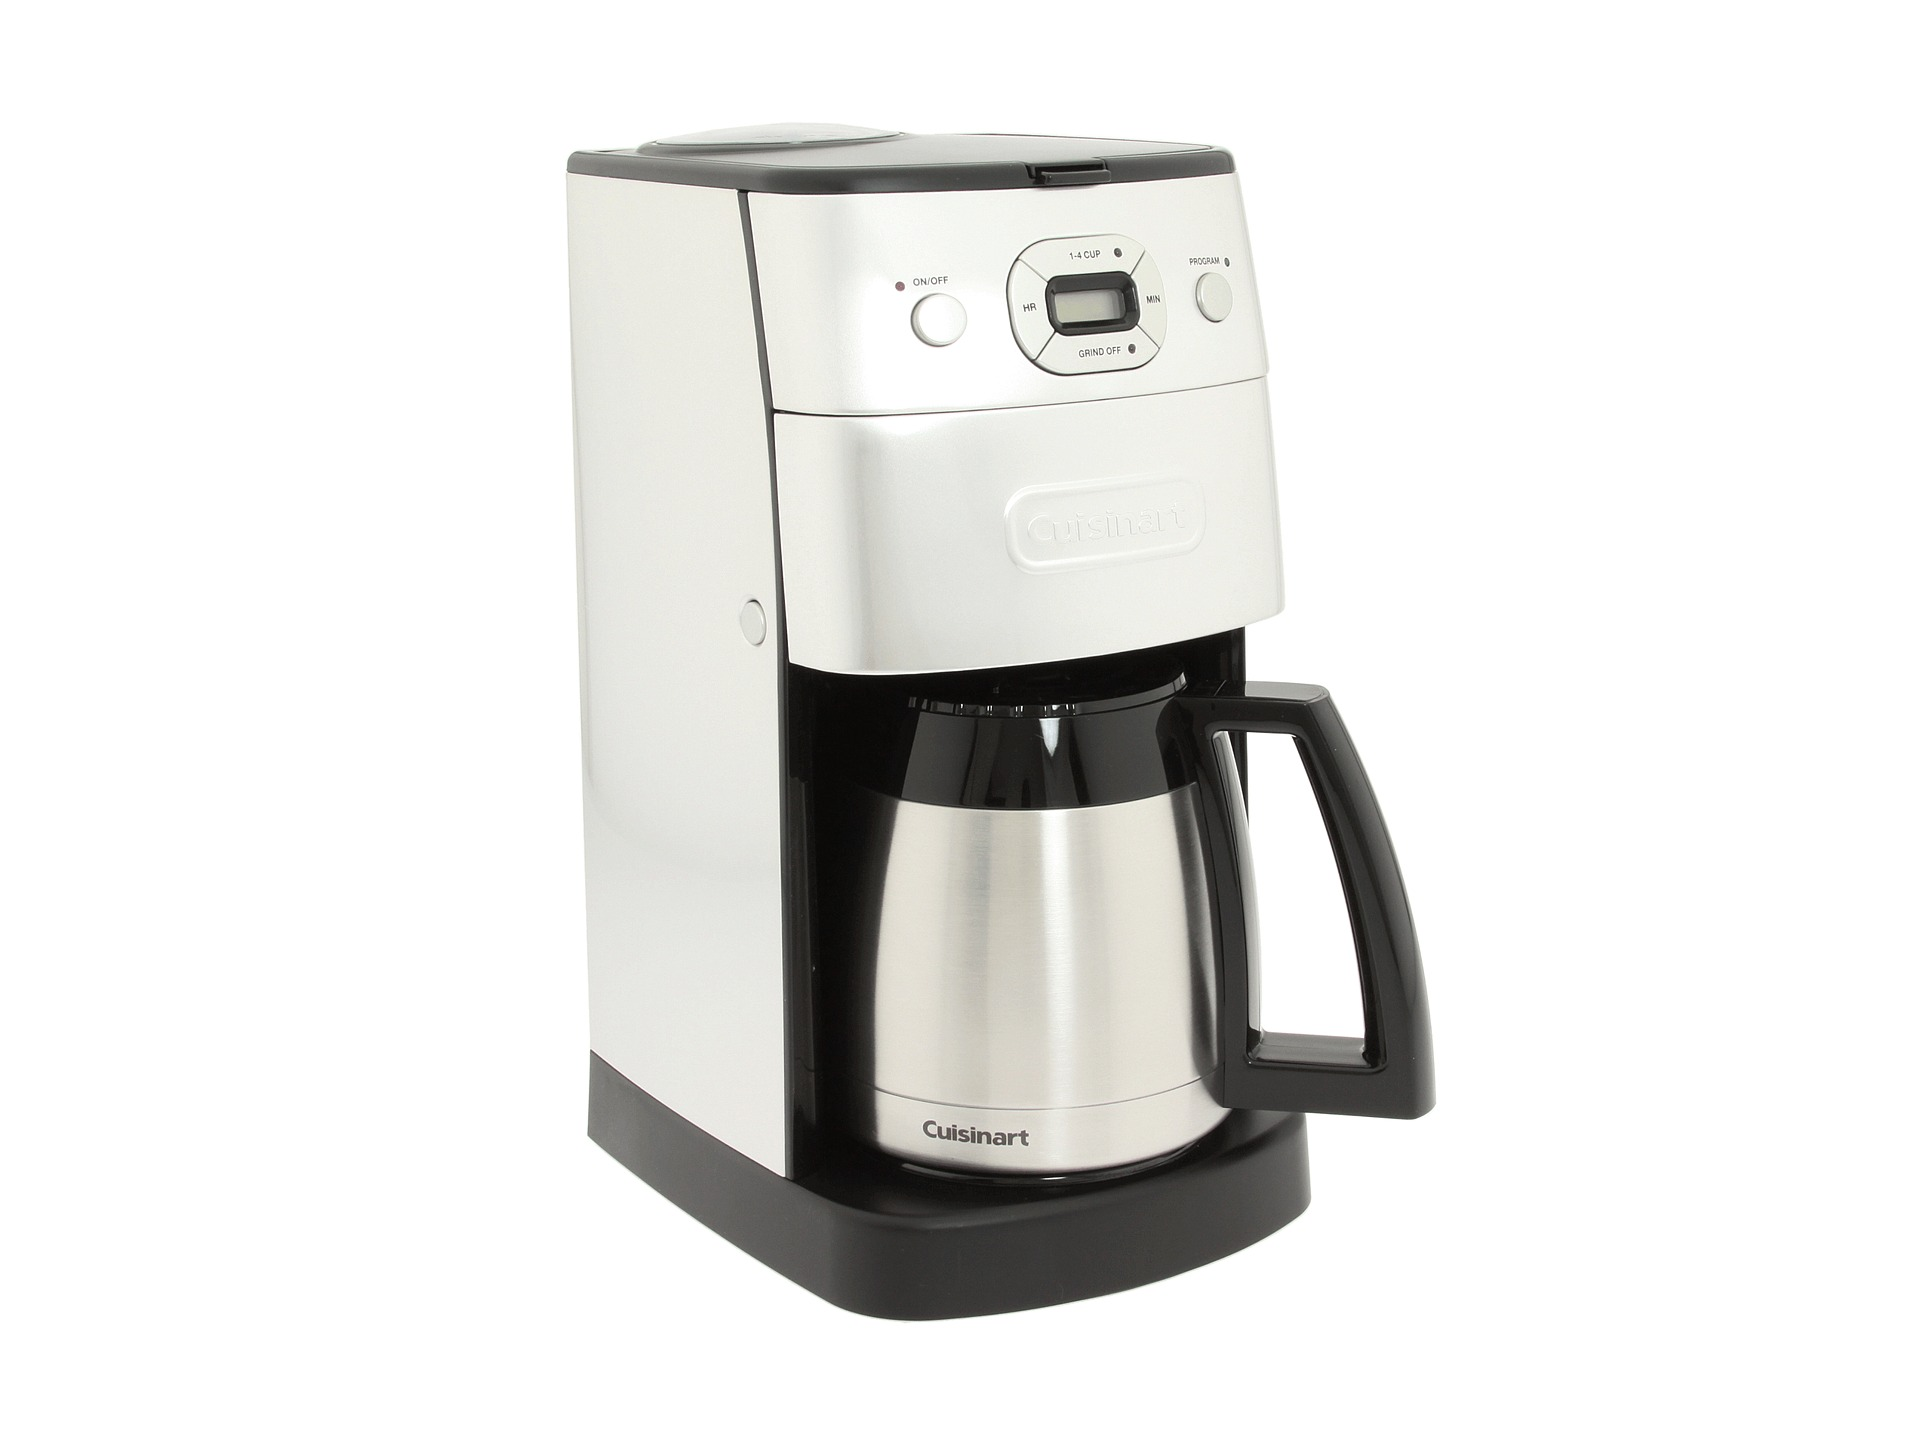 Cuisinart Coffee Maker Error 2 : Cuisinart Dgb 650bc Grind Brew Thermal 10 Cup Coffee Maker Shipped Free at Zappos